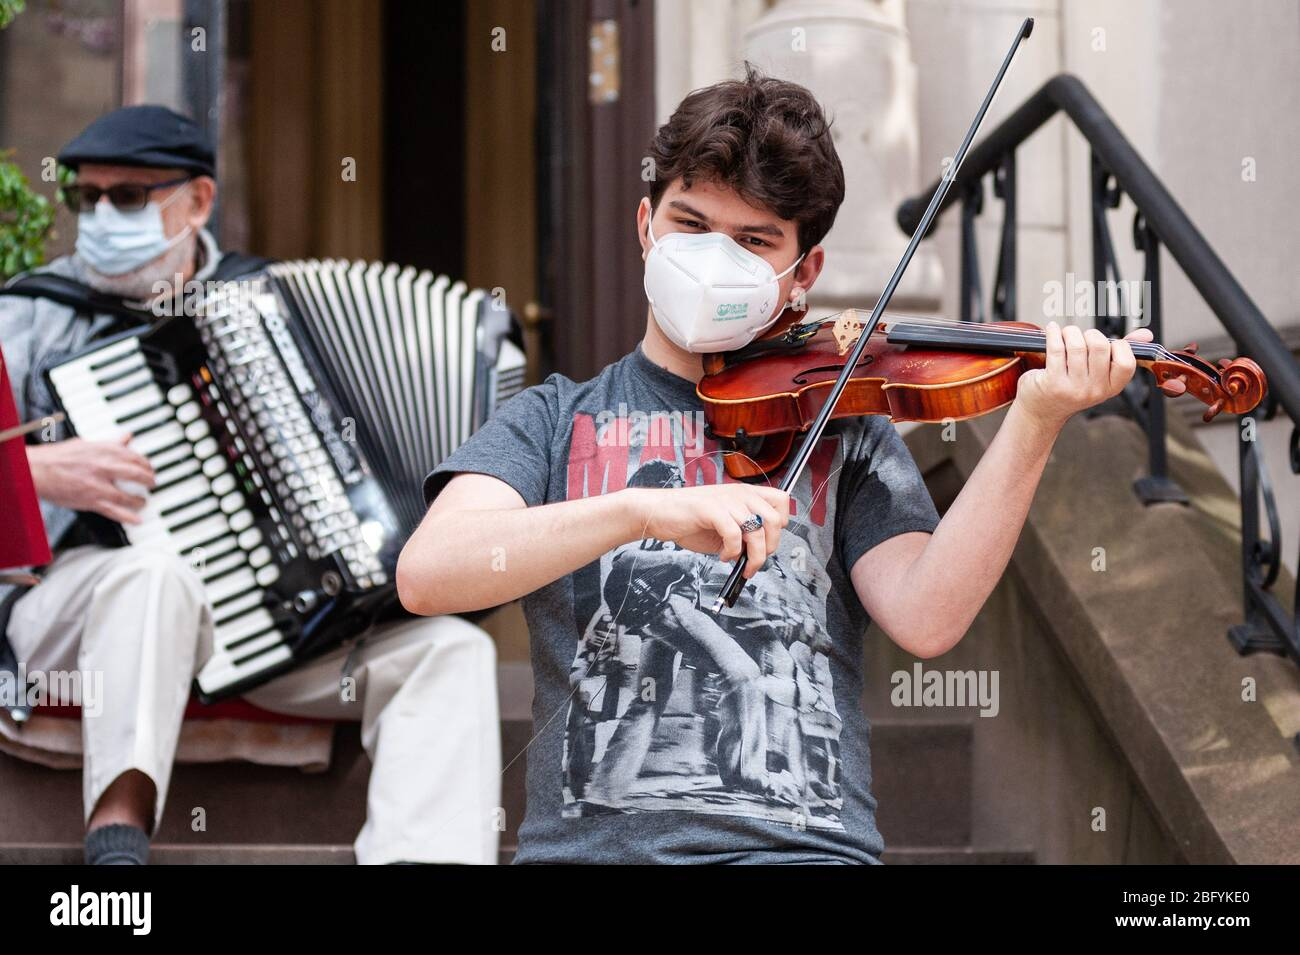 Brooklyn, United States. 19th Apr, 2020. 18-year-old Park Sloper Lev Garfein plays the violin brightening the day for neighbors and passerby's in the Park Slope neighborhood of Brooklyn, New York, during the COVID-19 pandemic on April 19, 2020. (Photo by Gabriele Holtermann-Gorden/Pacific Press) Credit: Pacific Press Agency/Alamy Live News Stock Photo